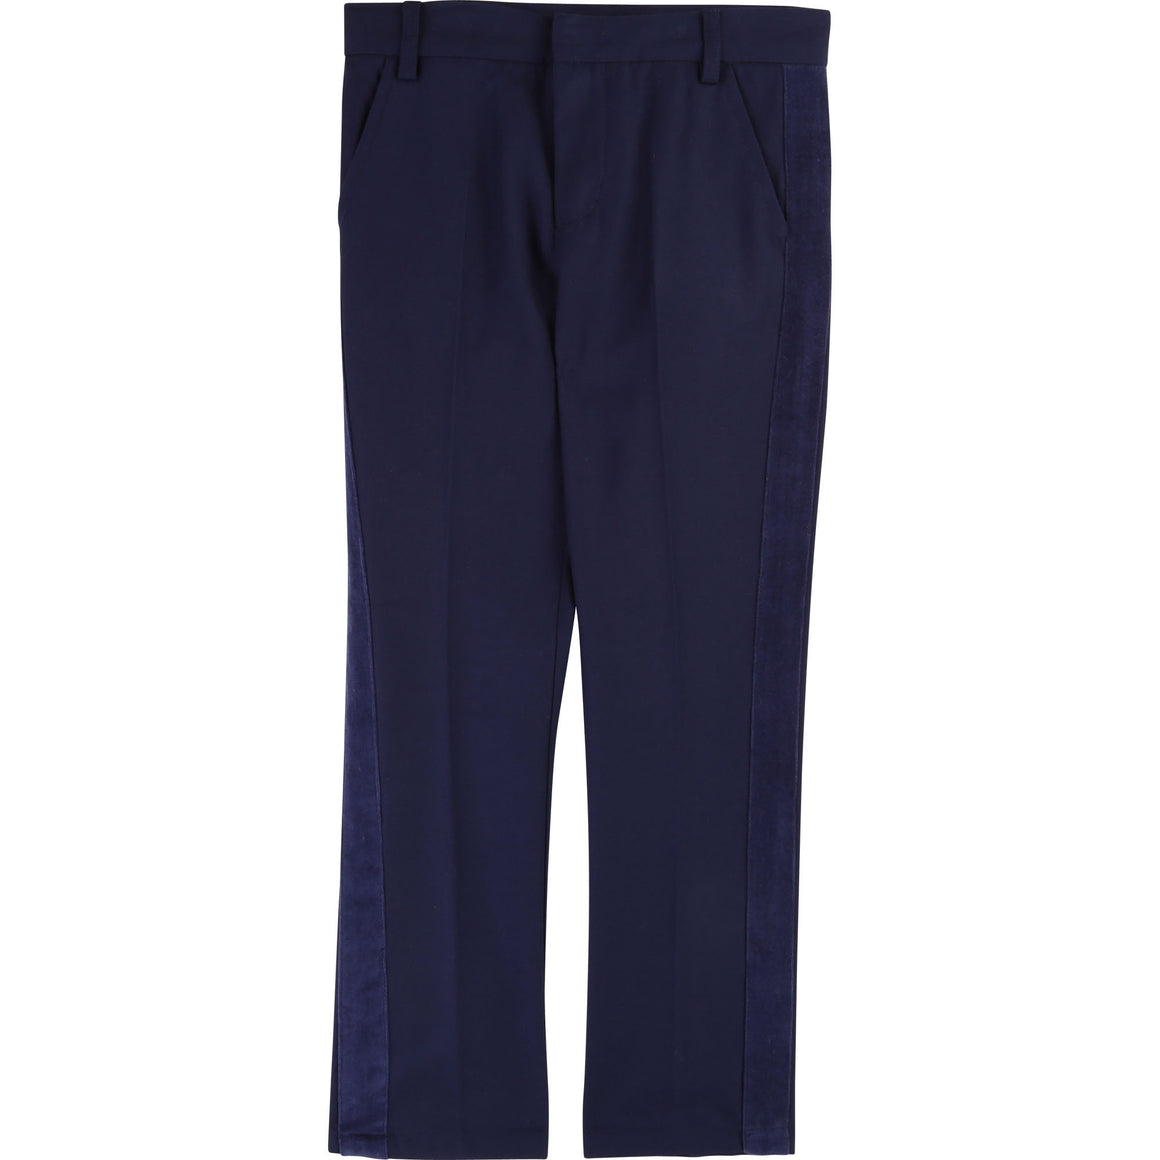 Billybandit Boys Navy Blue Suit Trousers